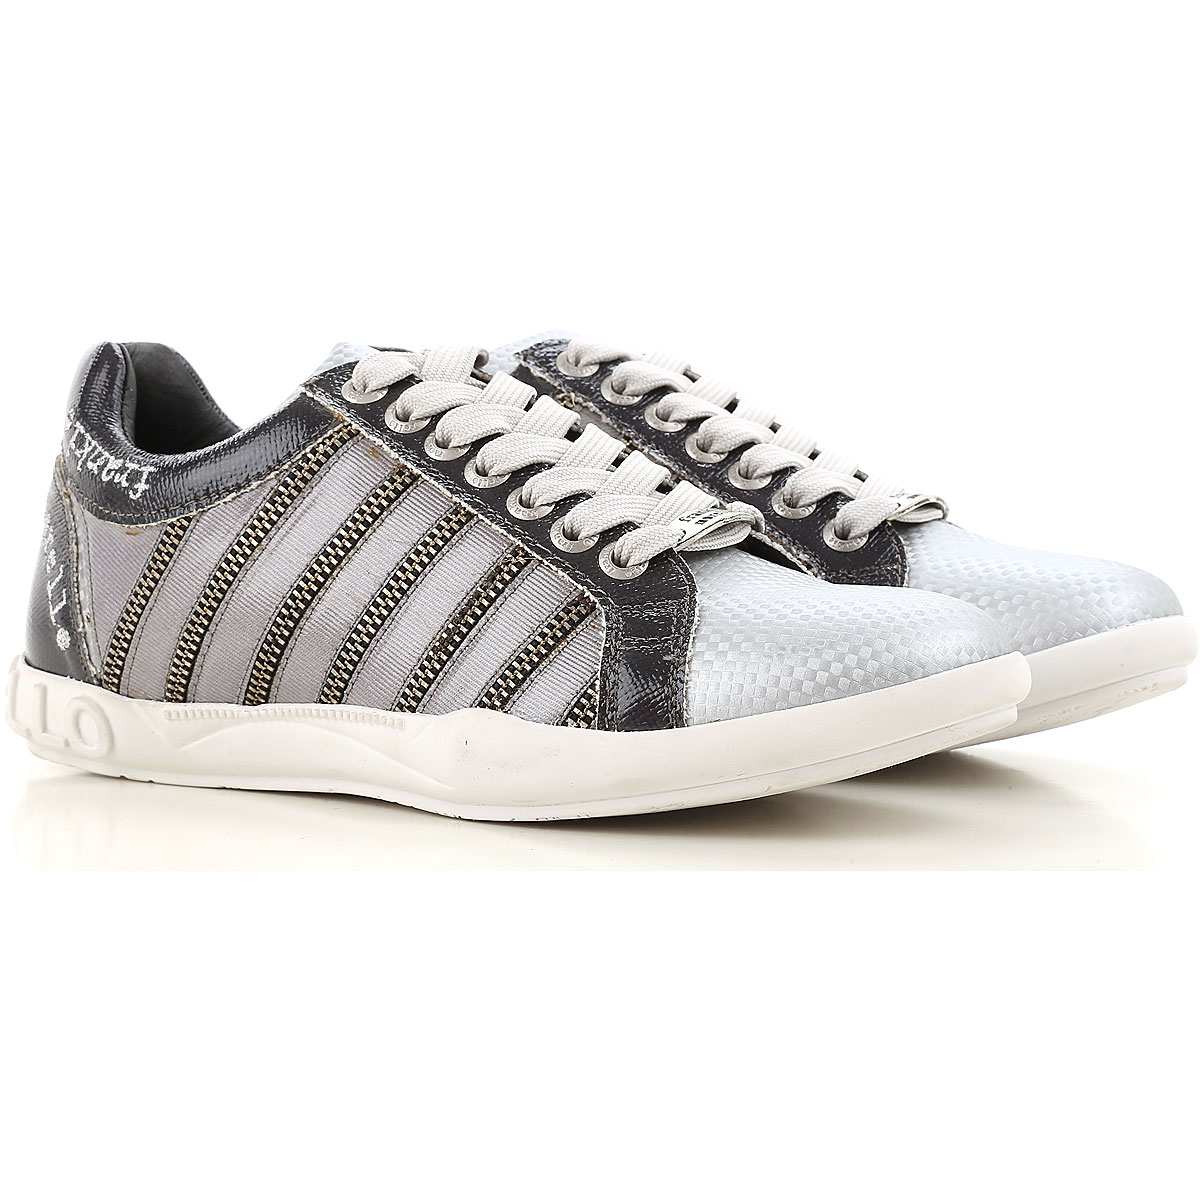 Image of Frankie Morello Sneakers for Women On Sale in Outlet, Silver, Leather, 2017, 6 7